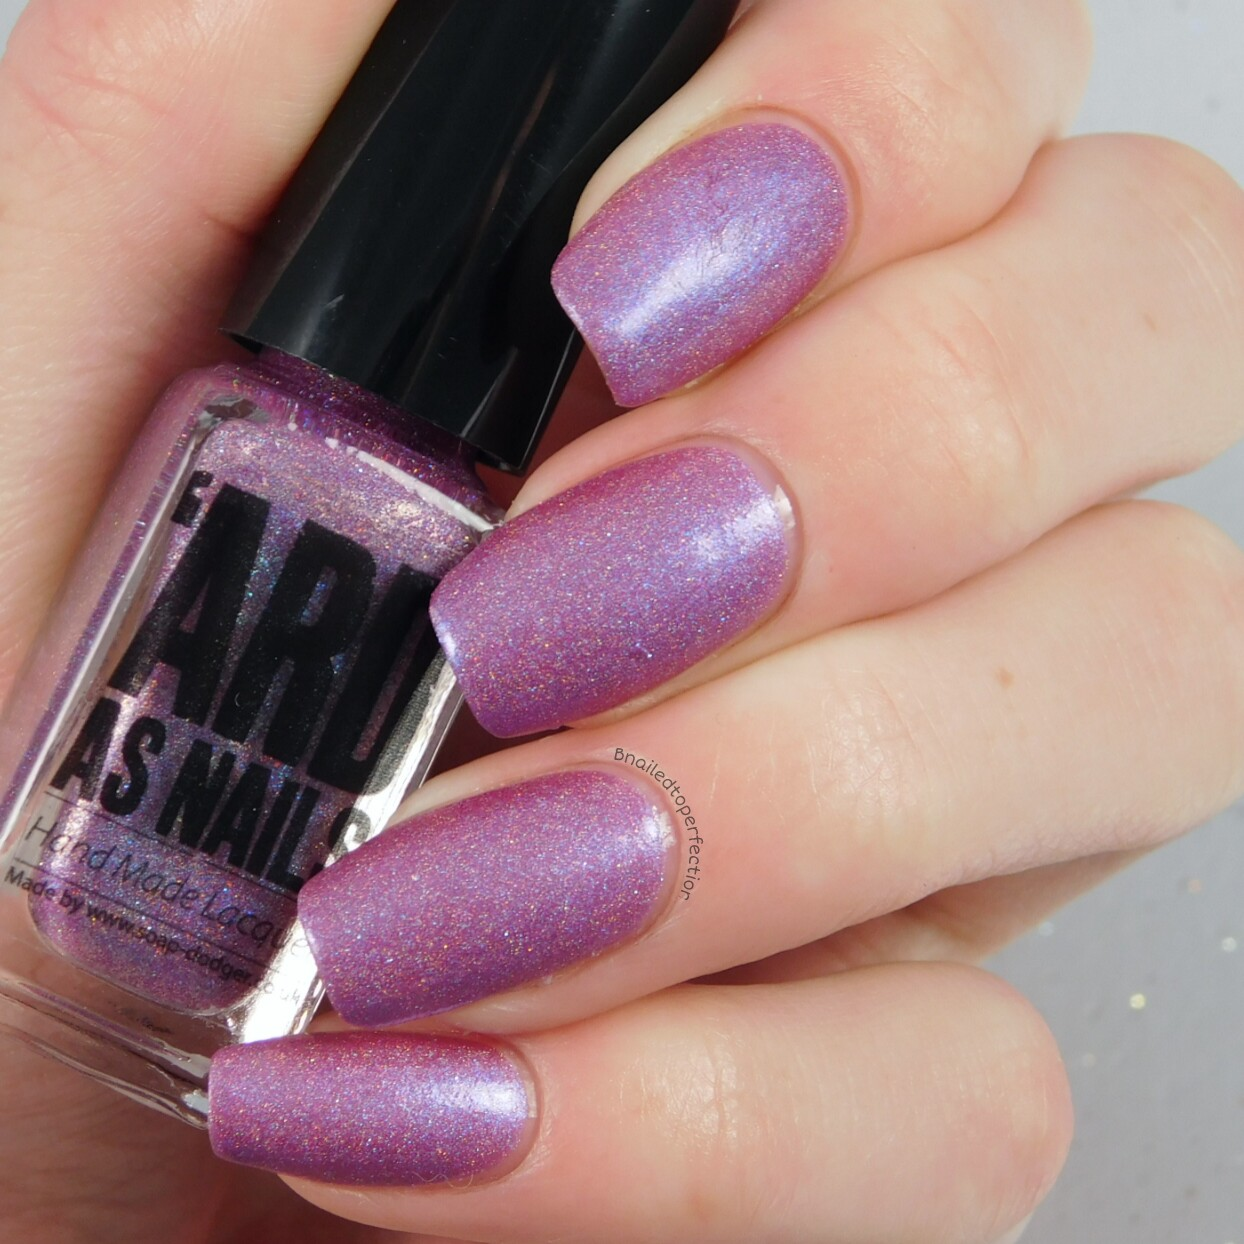 B Nailed To Perfection: \'Ard As Nails #Hashtag collection - swatches ...